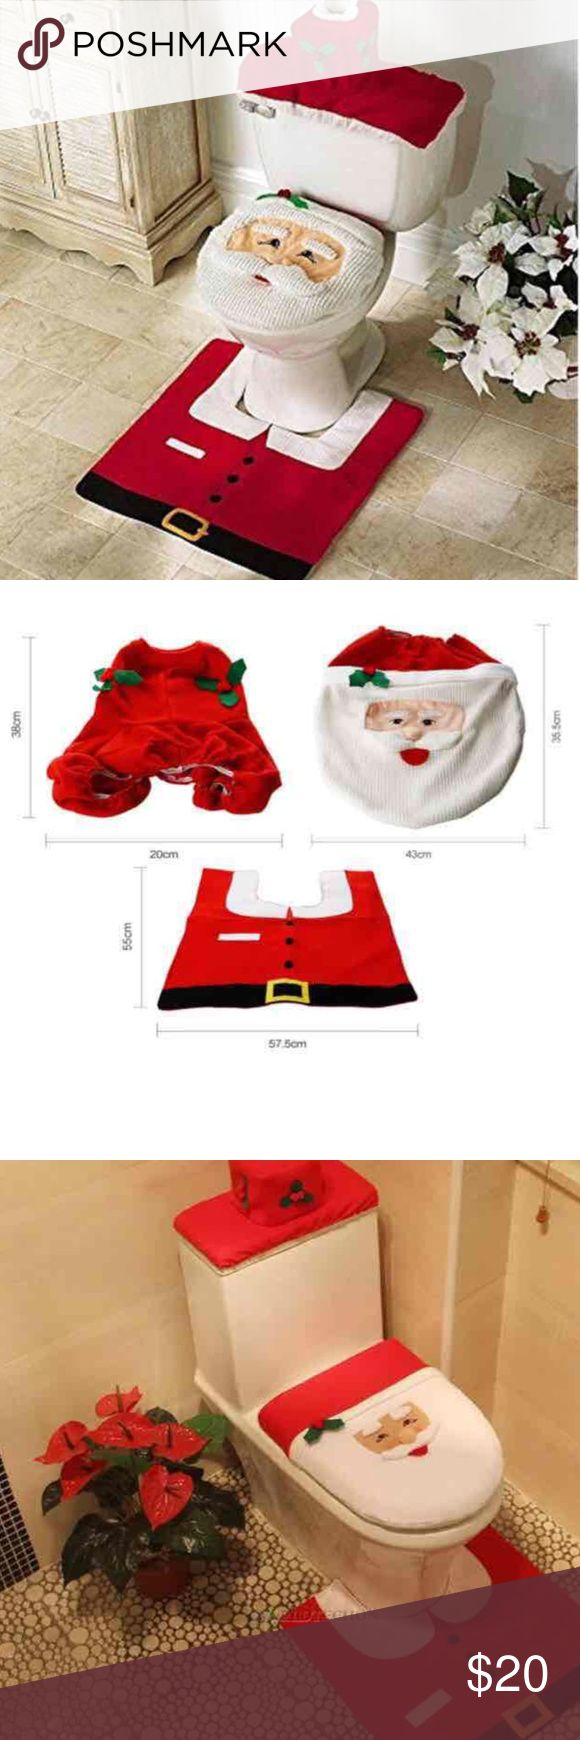 New 3pcs Christmas Toilet Cover And Rug Set This cute with a smiley face snowman as its decor for your bathroom for christmas holidays! Great addition to boost up your holiday spirit! And it can transform your normal every day bathroom look to something spiritual like this set!  Specification  Toilet Seat Cover Size: 42 x 33cm (16.54 x 12.99inch) Rug Size: 55 x 57.5cm (21.65 x 22.24inch) Color: Red  Features  -Great Addition To The Holiday Spirit With A Cute Smiley Face Snowman -Toilet Seat…